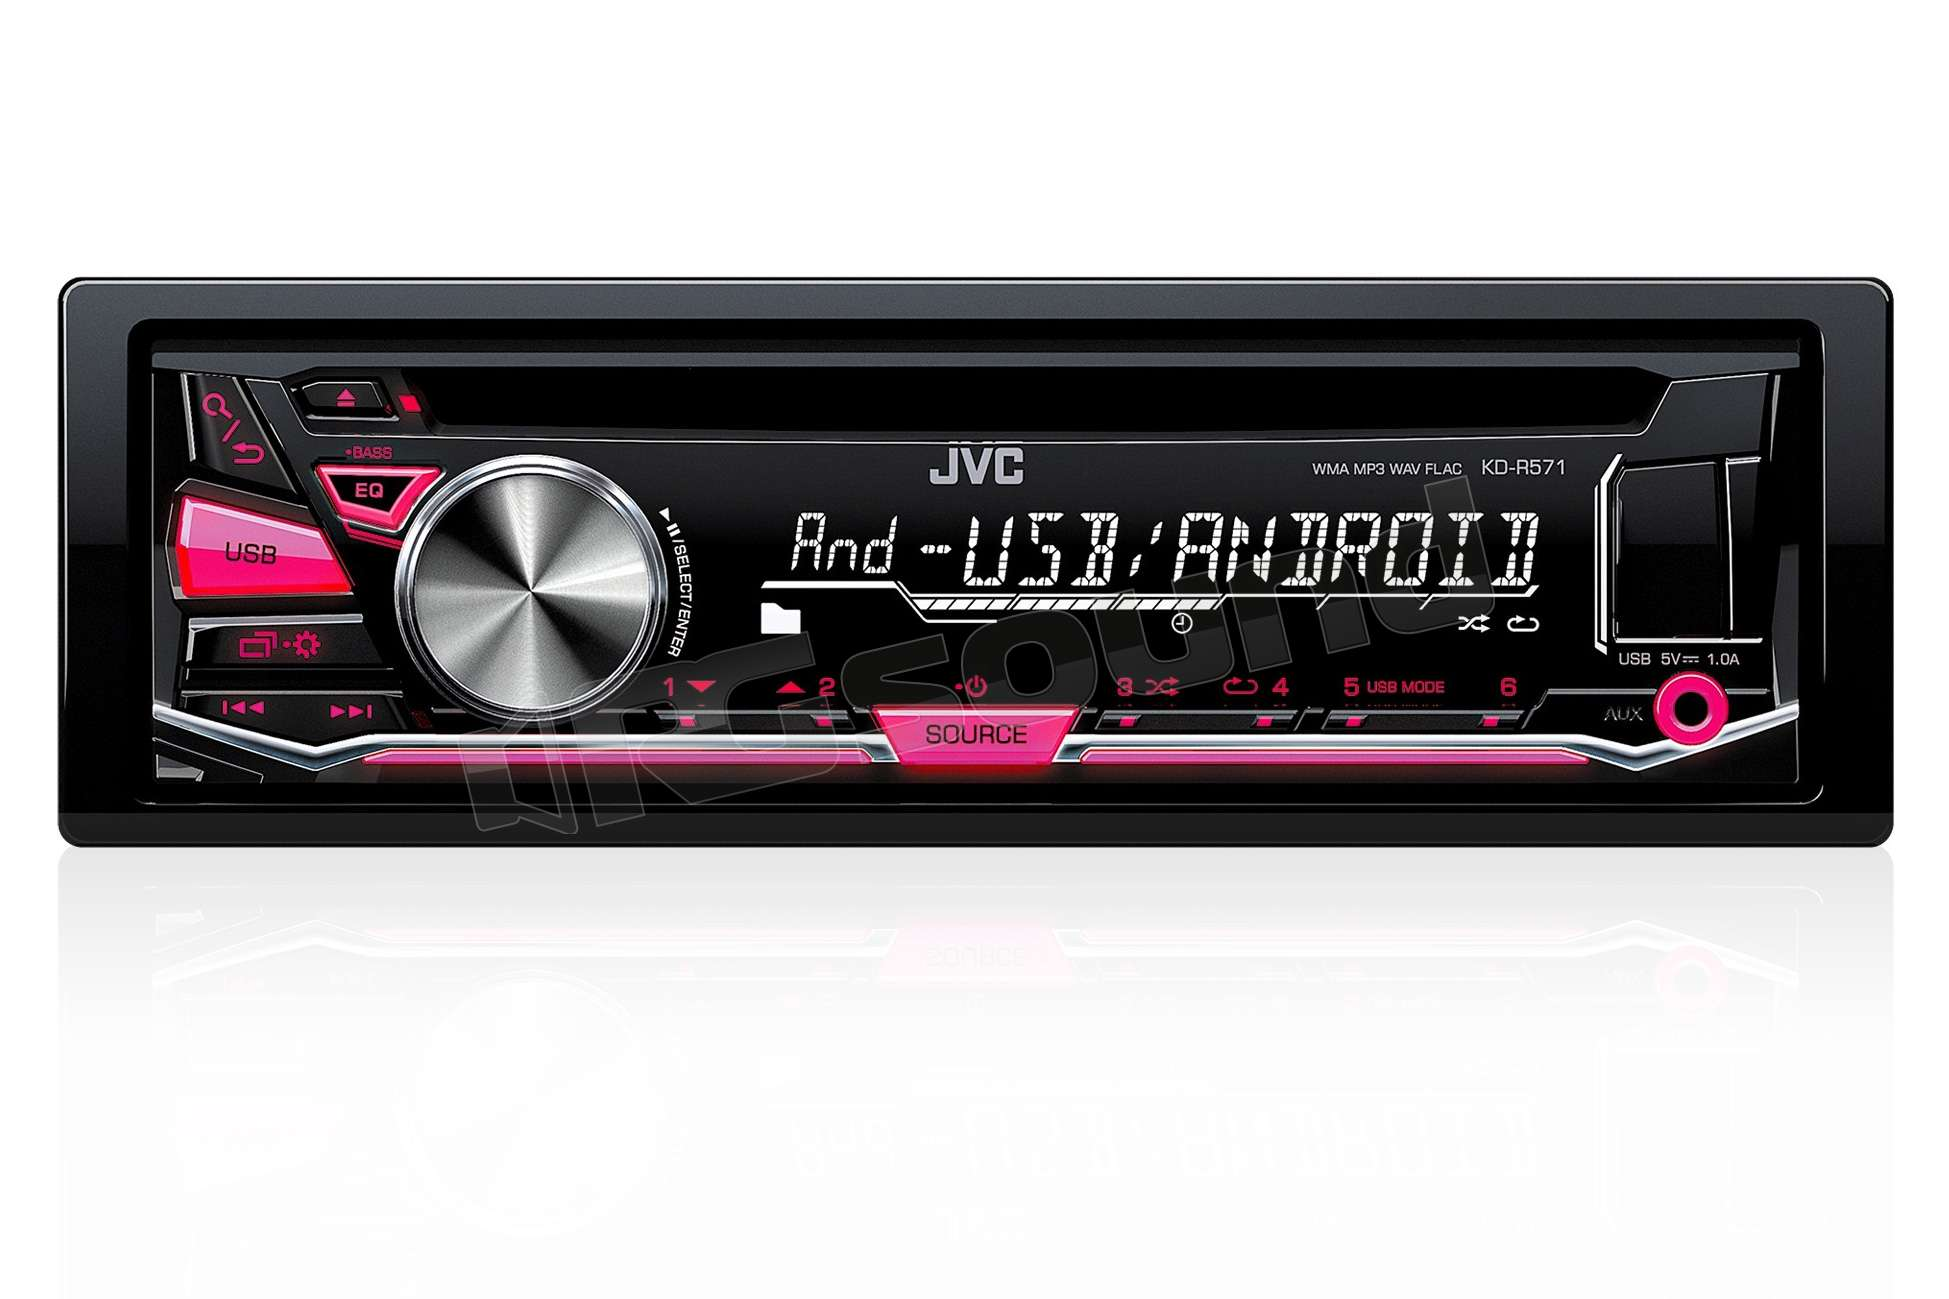 JVC KD-R571 Receiver Driver for PC